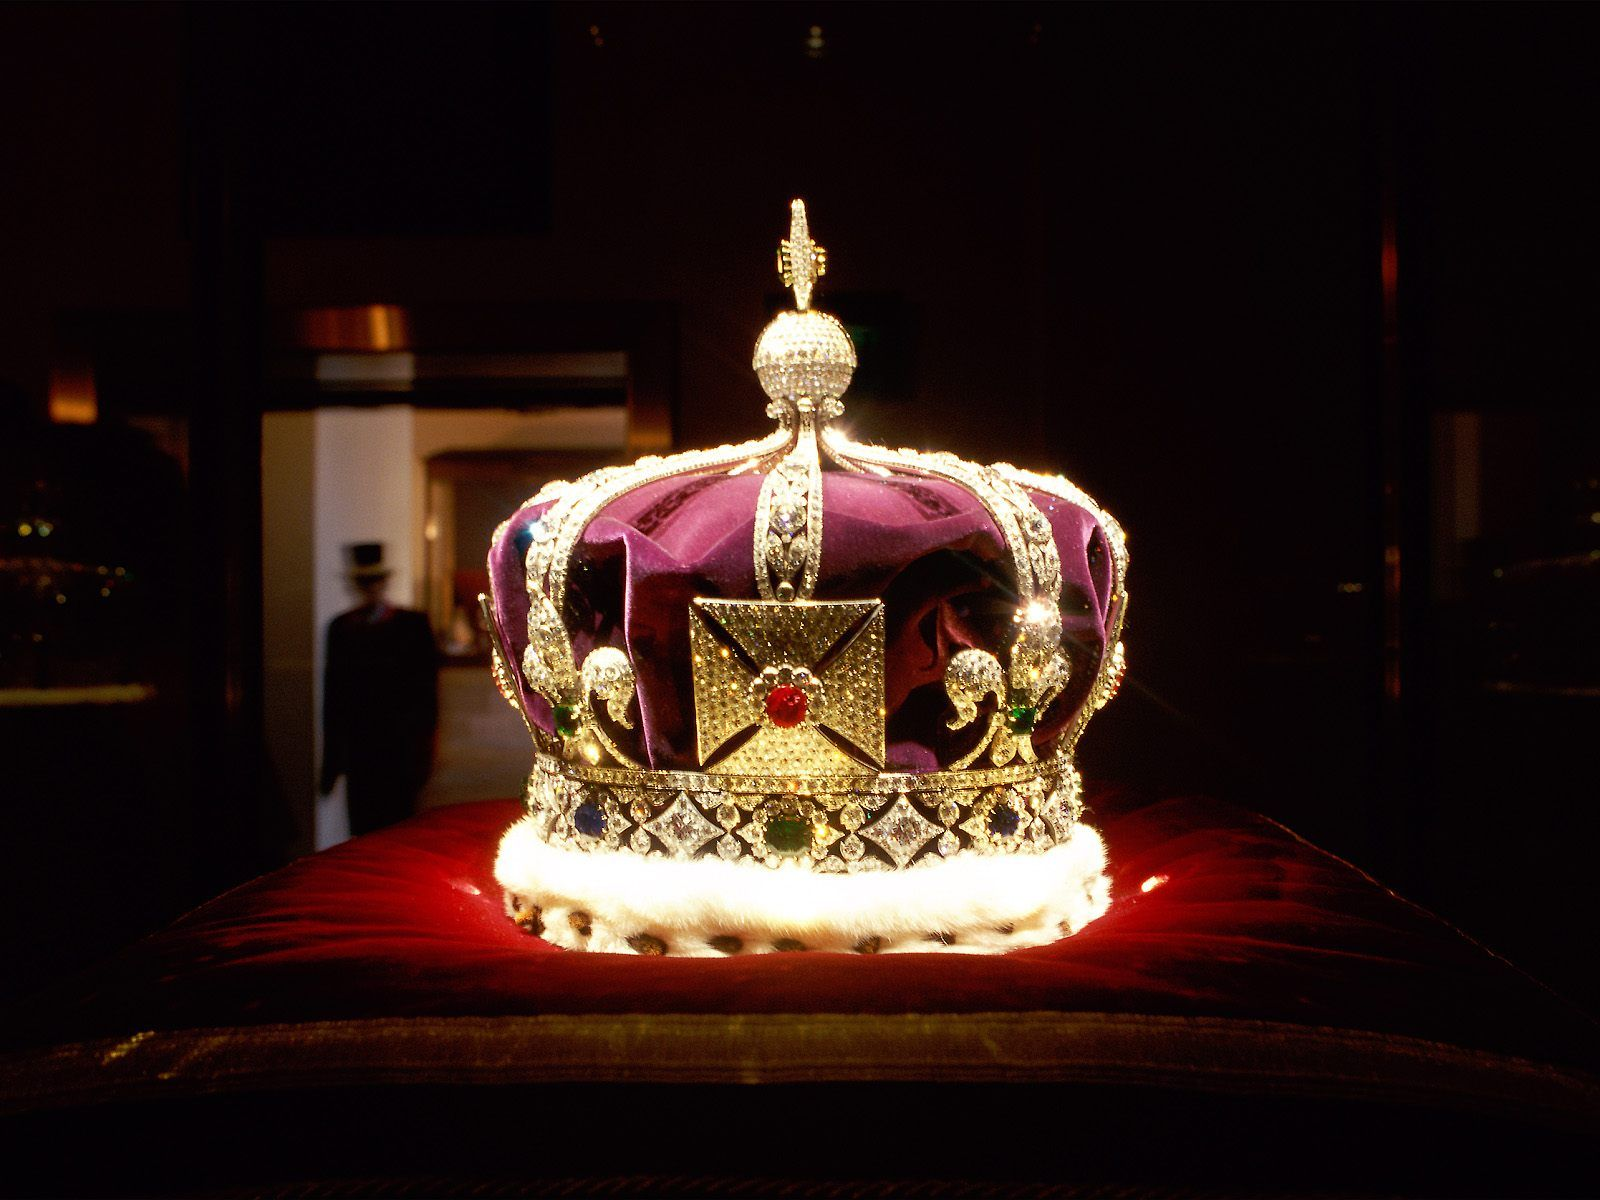 The Crown Jewels | Margy's Musings: Crown Jewels of England ...